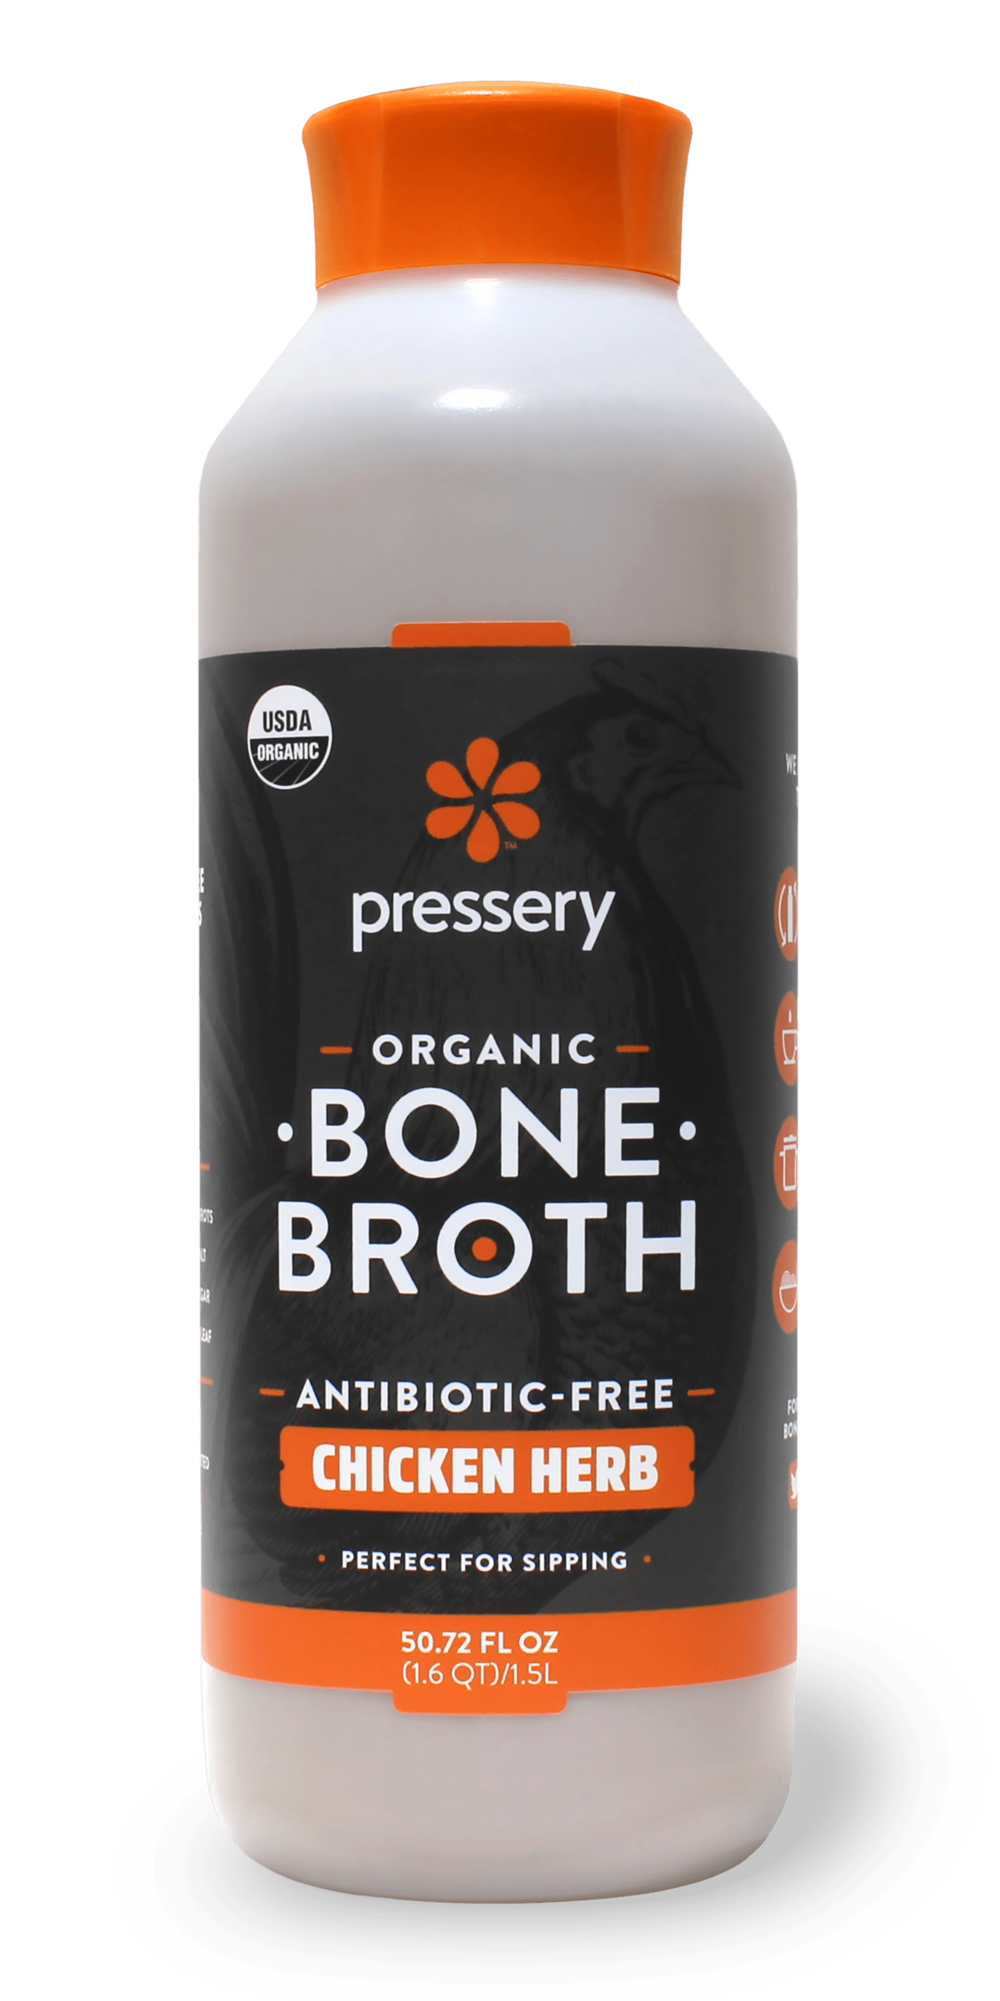 Chicken_Broth_50_Tall-min.png